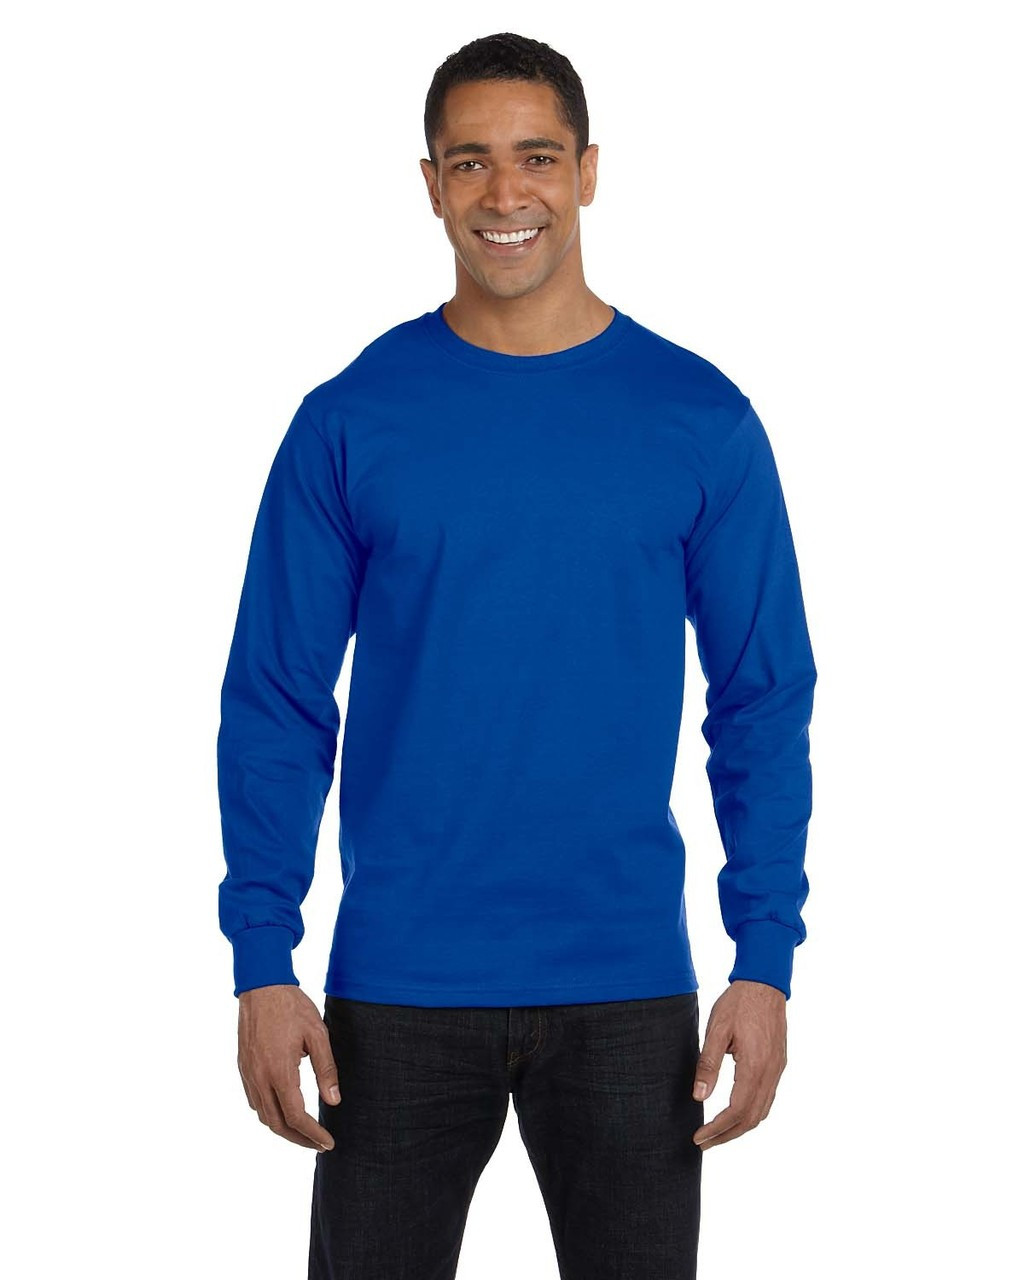 Royal - G840 Gildan DryBlend 50/50 Long Sleeve T-Shirt | Blankclothing.ca